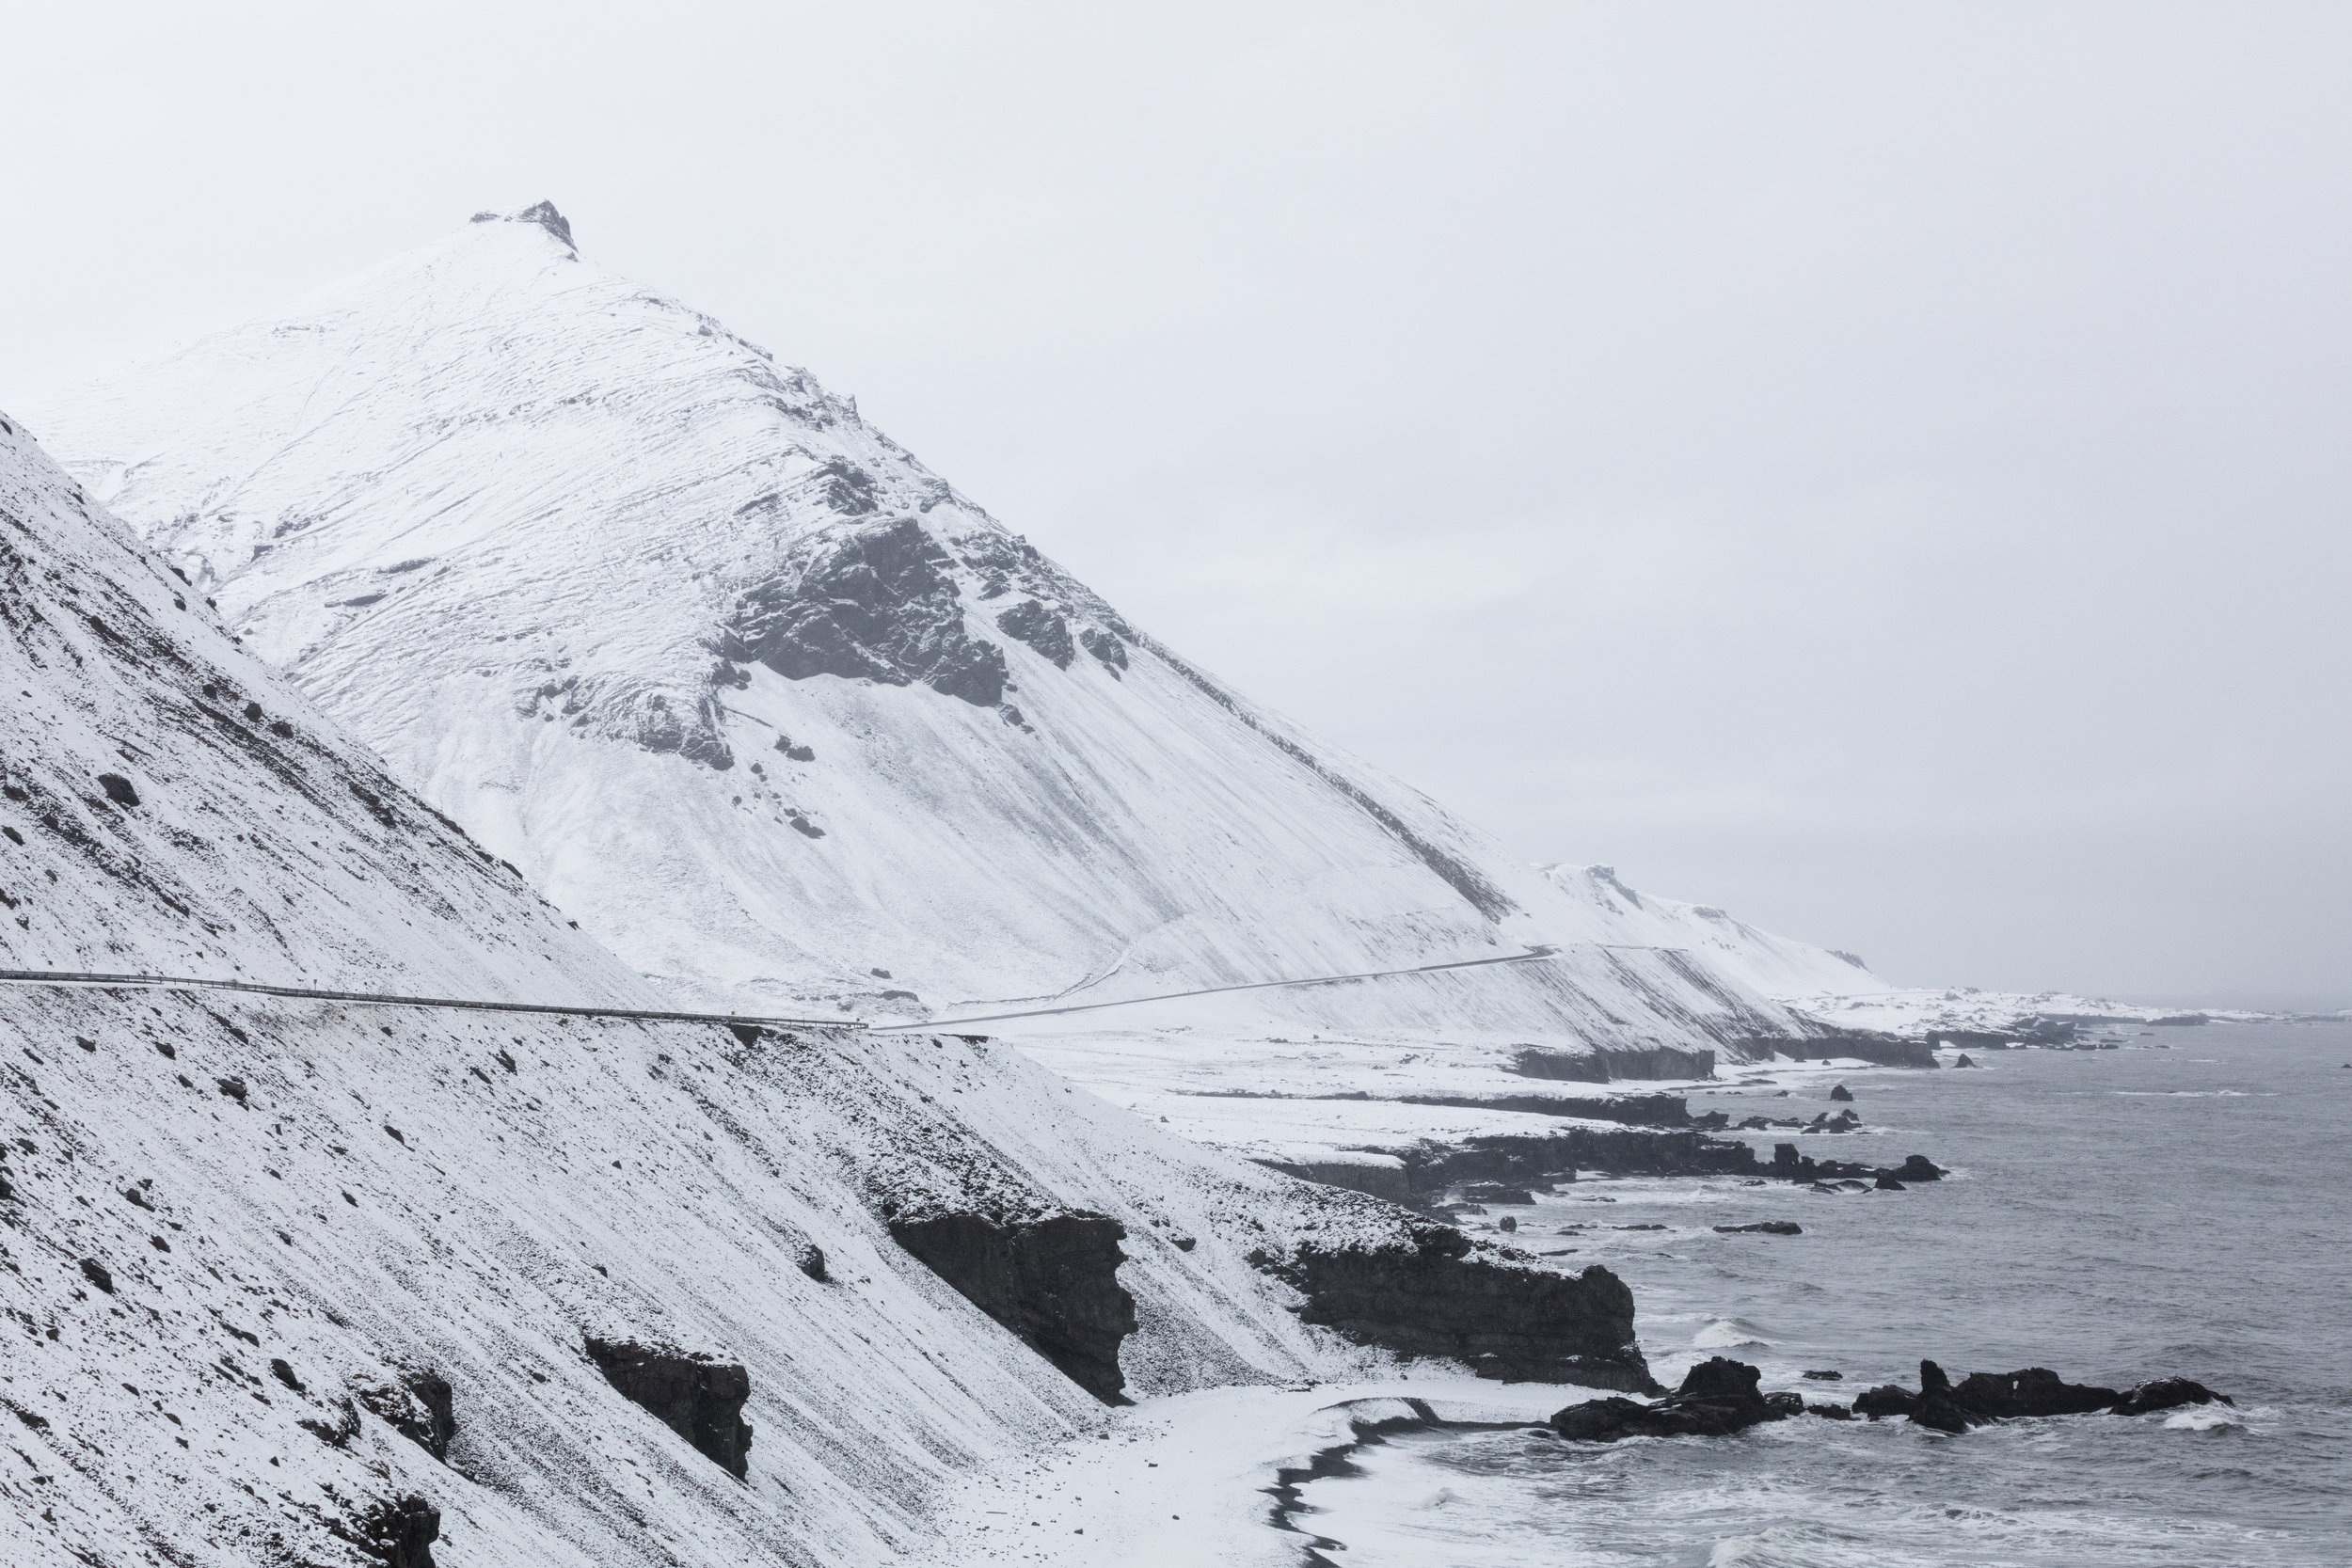 Iceland's+East+Fjords+covered+in+snow+|+East+Iceland+-+Faune.jpg